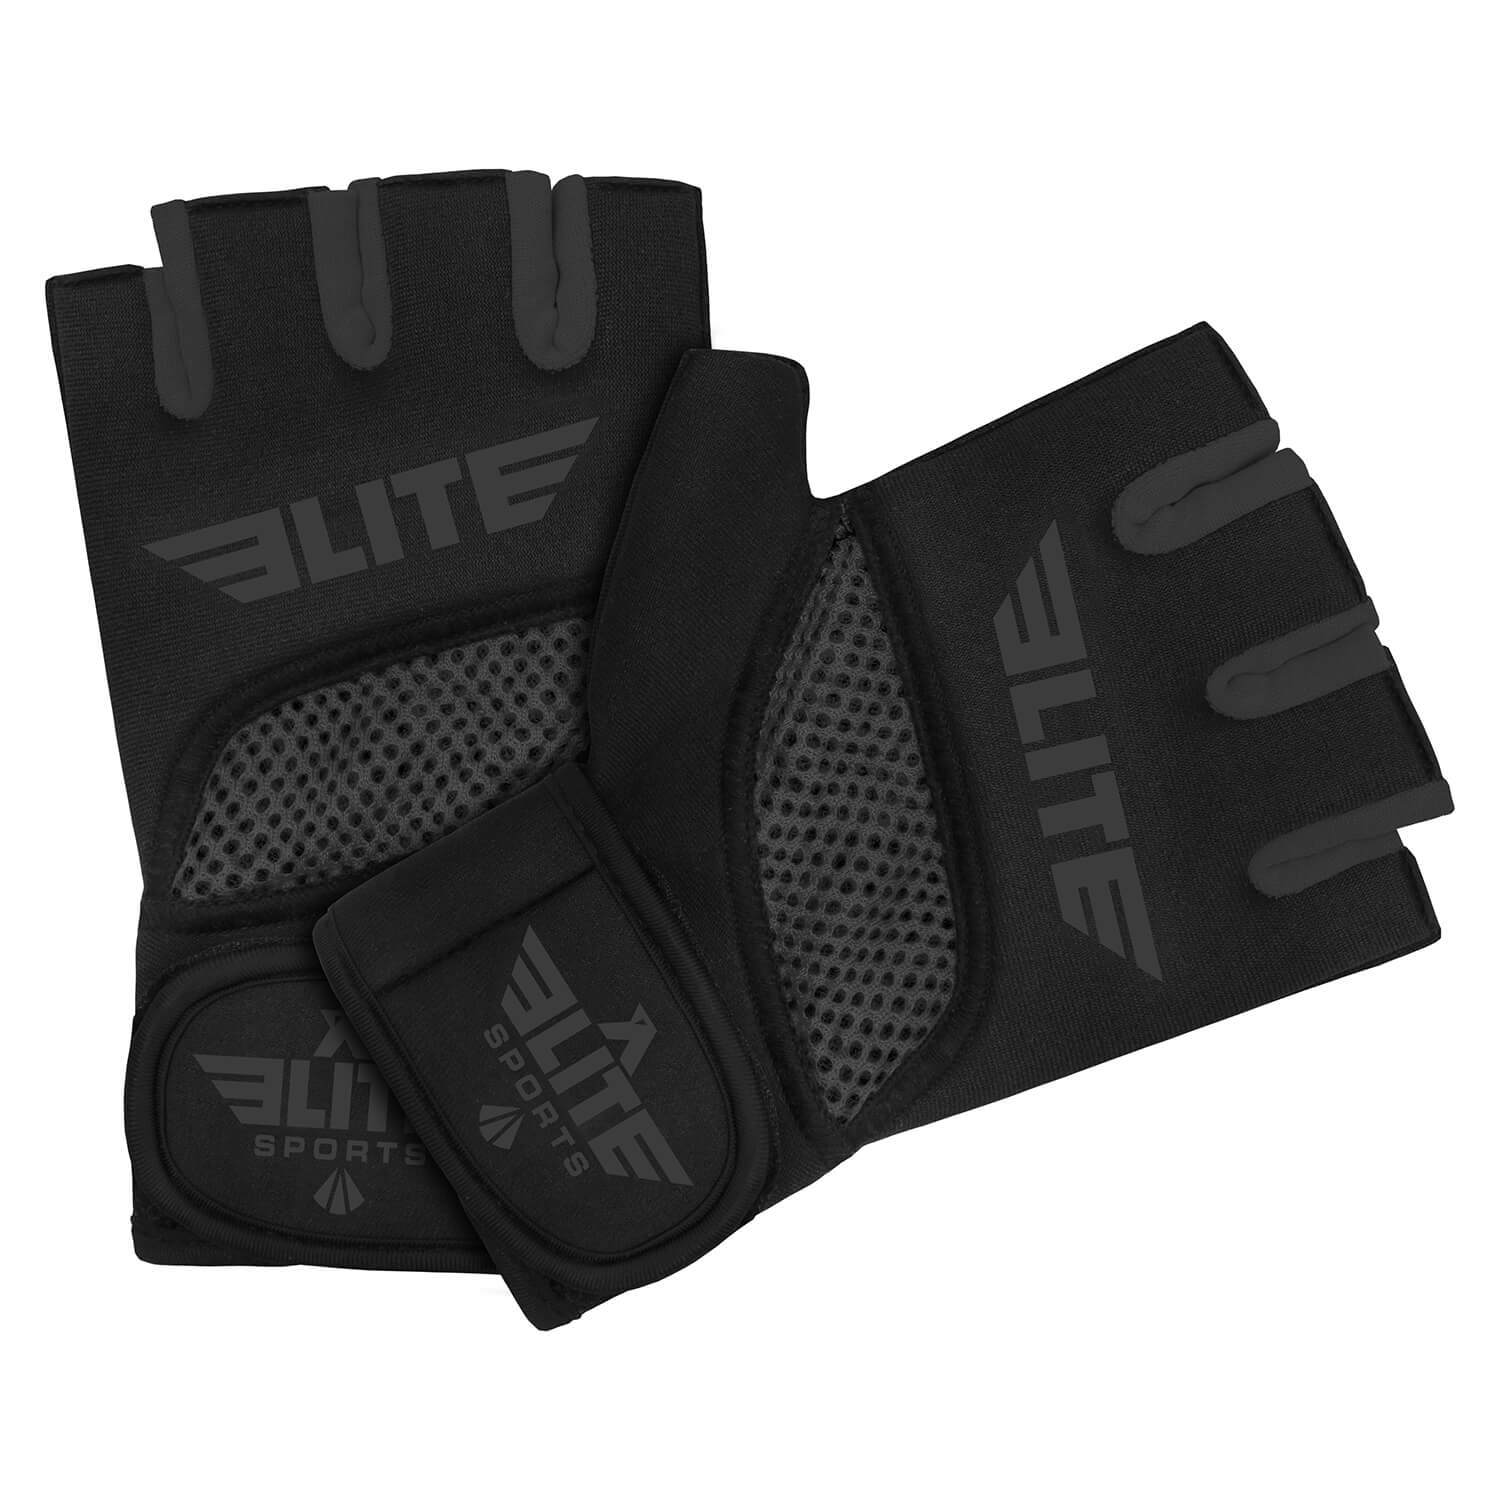 Load image into Gallery viewer, Elite Sports Black/Gray Cross Training Gel Hand Wraps